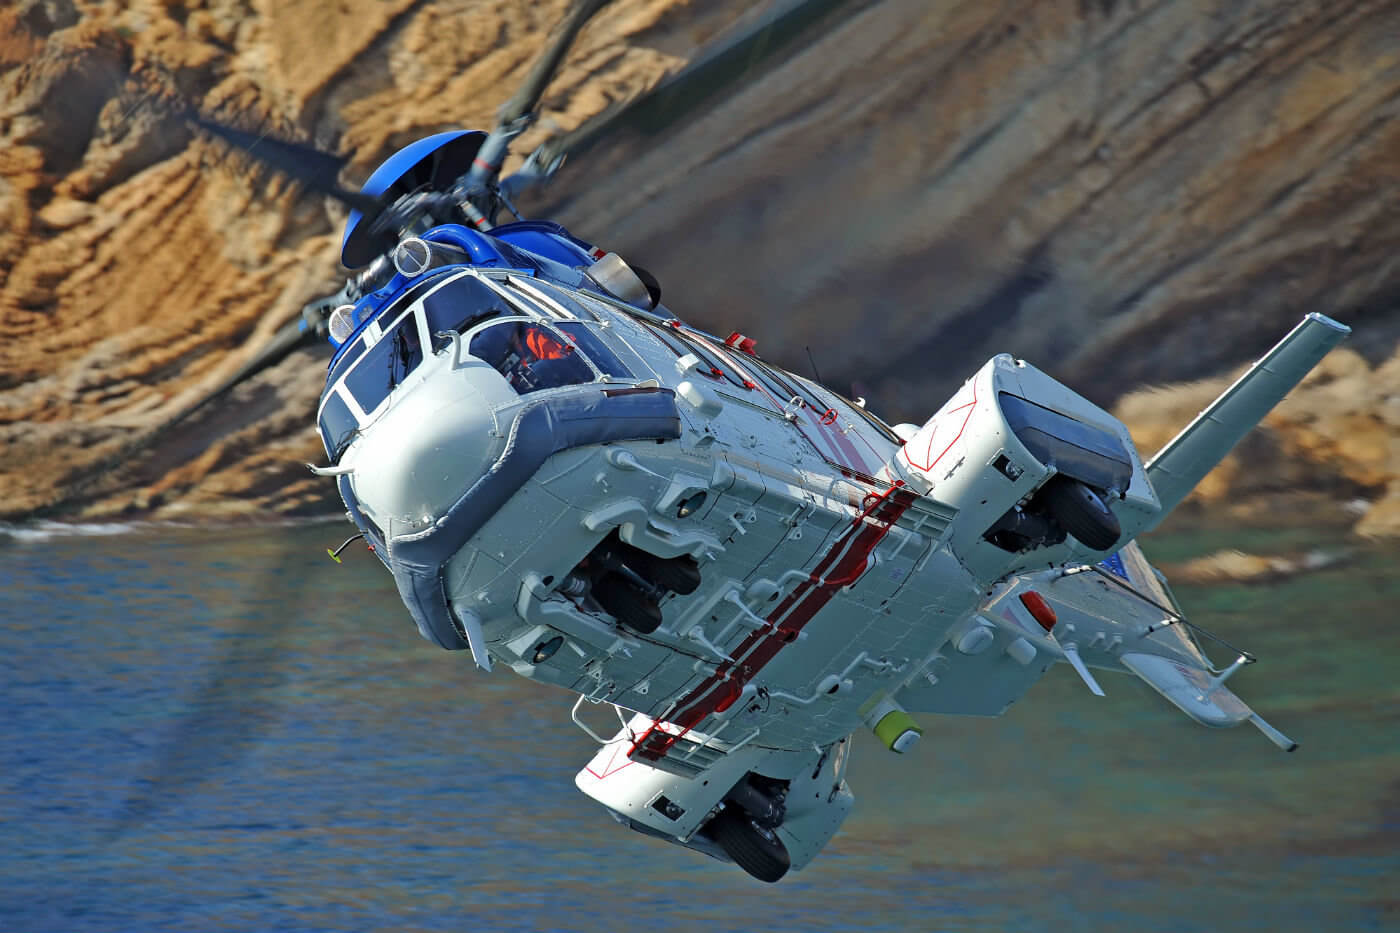 EASA authorized the AS332 L2 and H225 Super Pumas to fly again on Oct. 7, issuing an Airworthiness Directive (AD) that ordered operators to complete the actions described in Airbus's EASB, as well as mandating a life reduction and more frequent inspection for certain parts in the MGB. Anthony Pecchi Photo